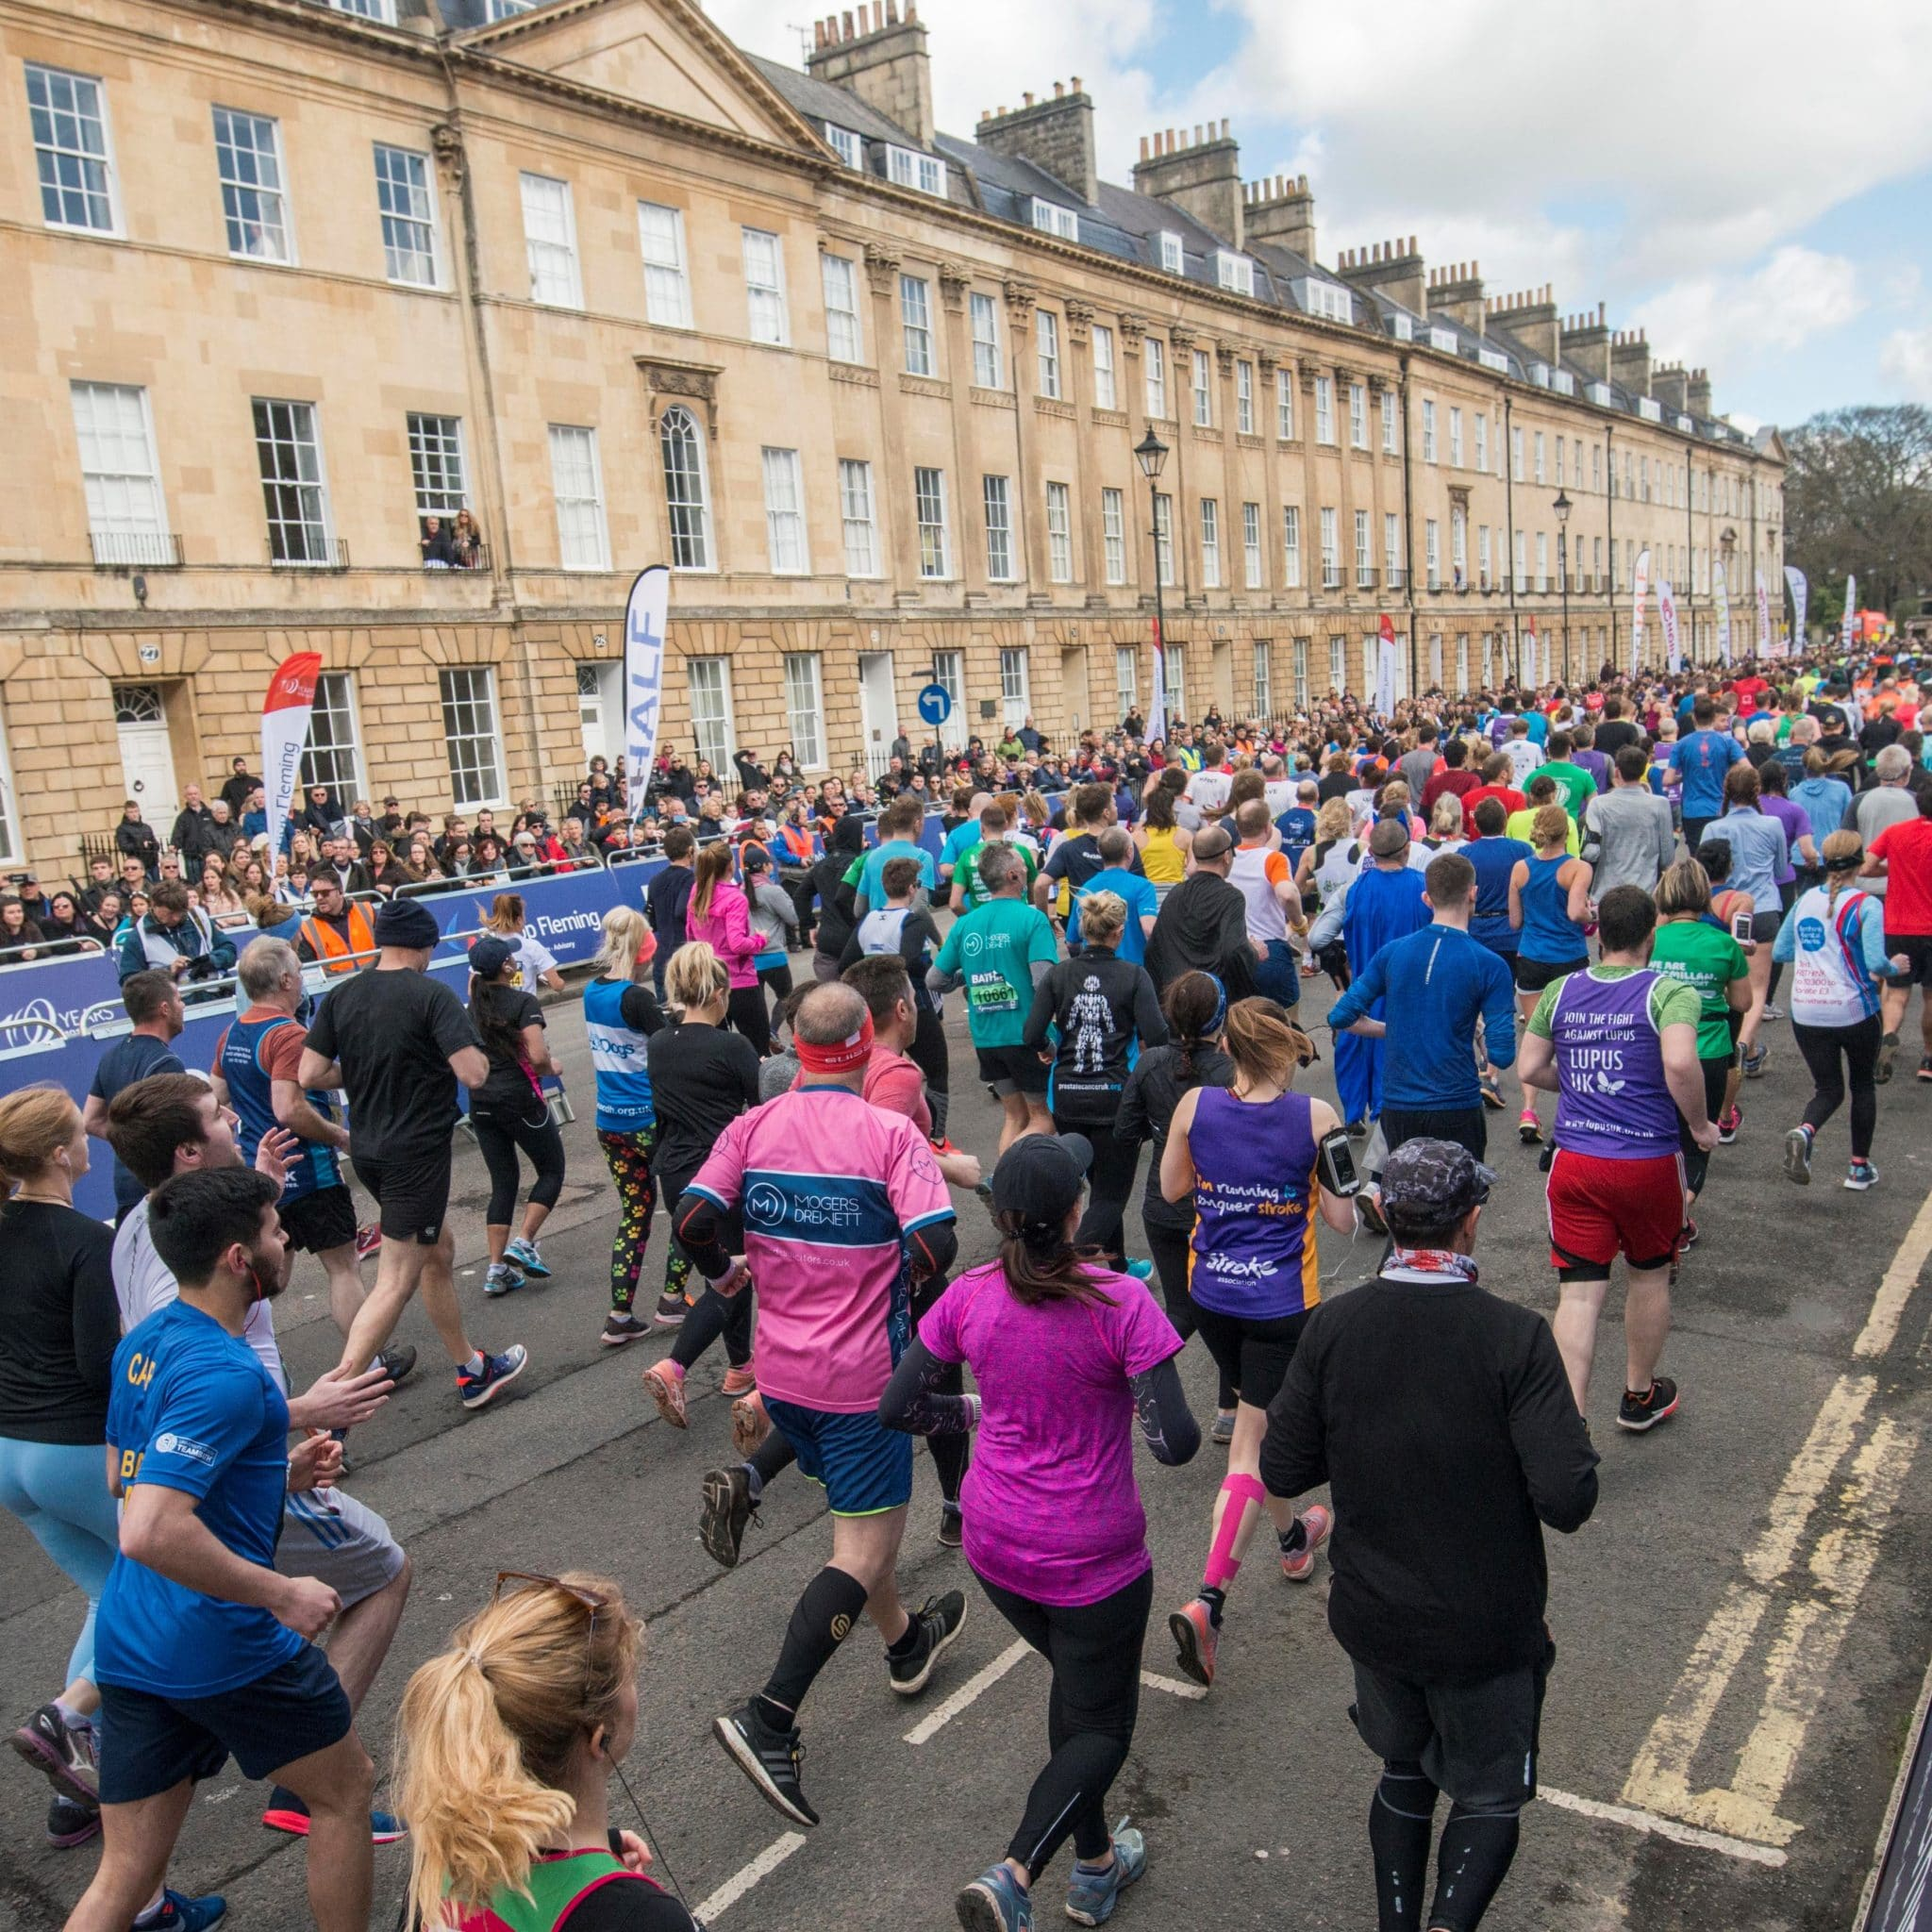 Image shows a crowd of runners running along a road lined with Bath's historic stone buildings